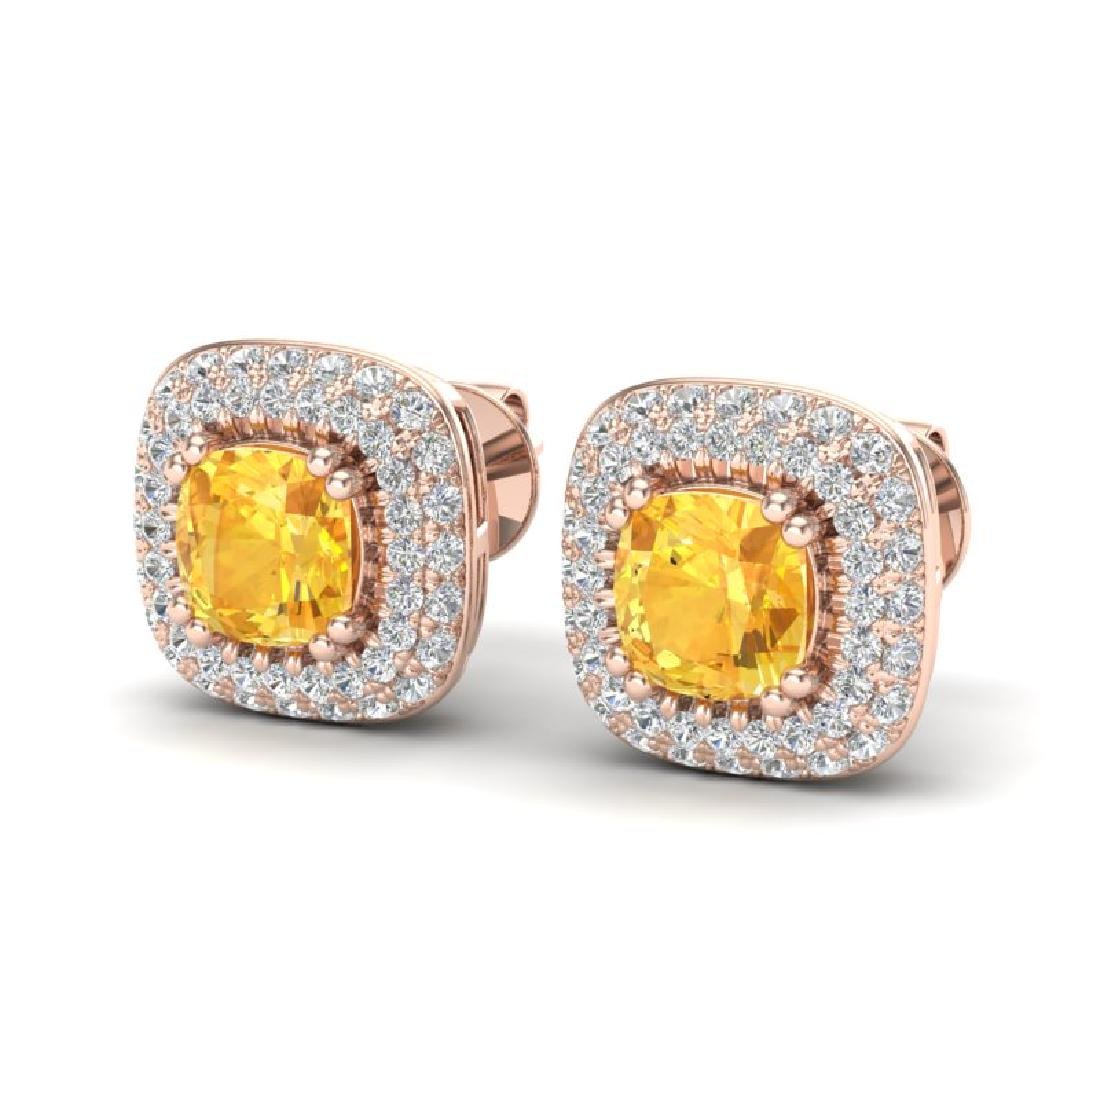 2.16 CTW Citrine & Micro VS/SI Diamond Earrings Halo